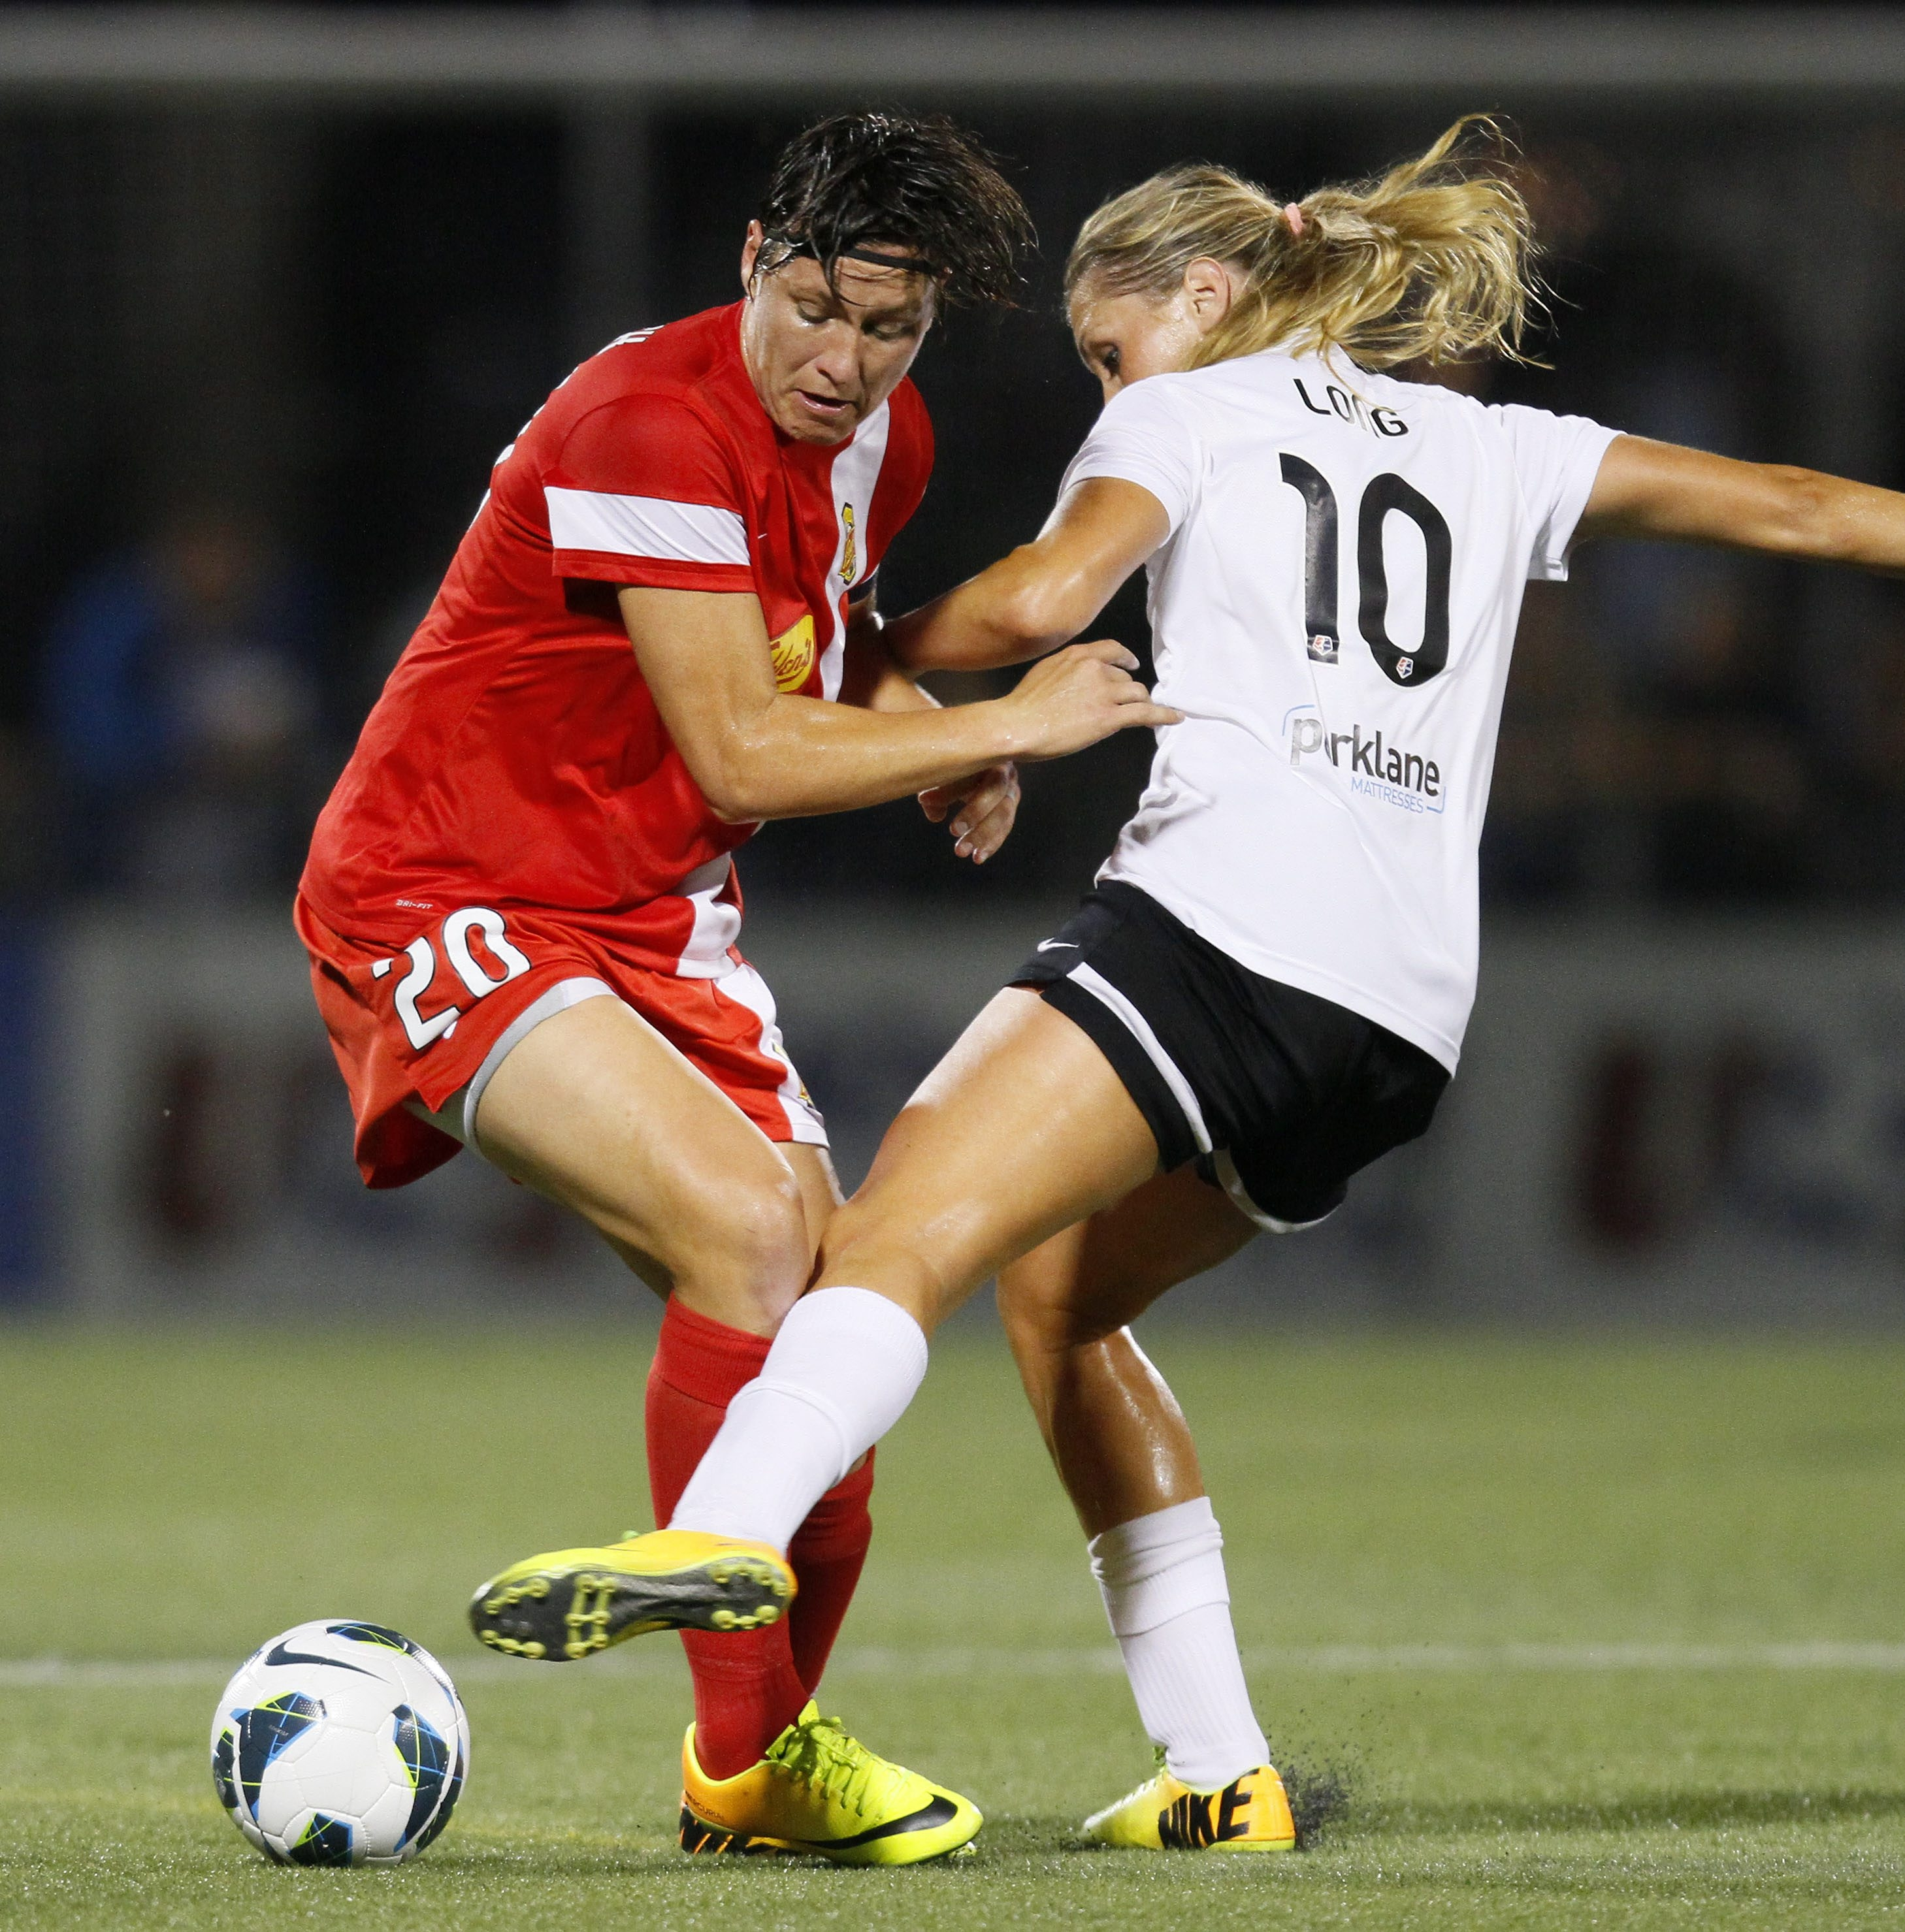 The play of WNY Flash star Abby Wambach (20) and her teammates impressed some fans from Elma.